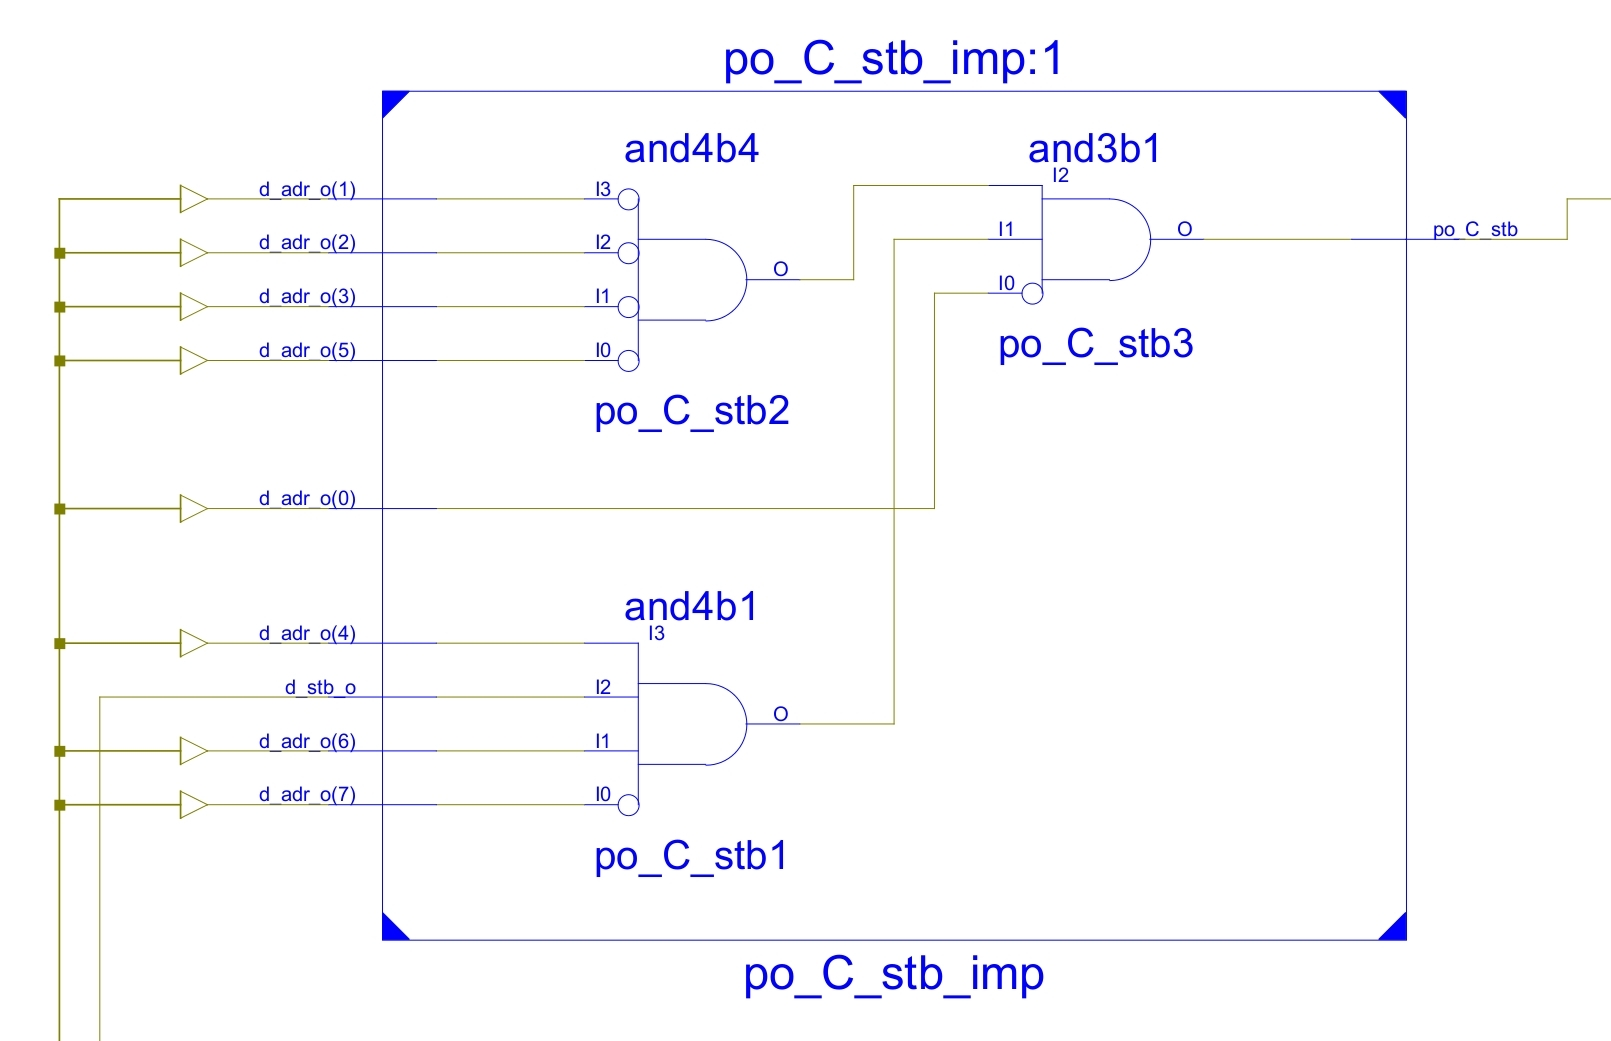 Picobomb 7segdriverinverterwiringdiagramjpg The Data On Bus D Dat O Will Be Stored In Output Ports Eight Internal Flip Flops Q Outputs Of Which Drive Port C Shown Figure 2